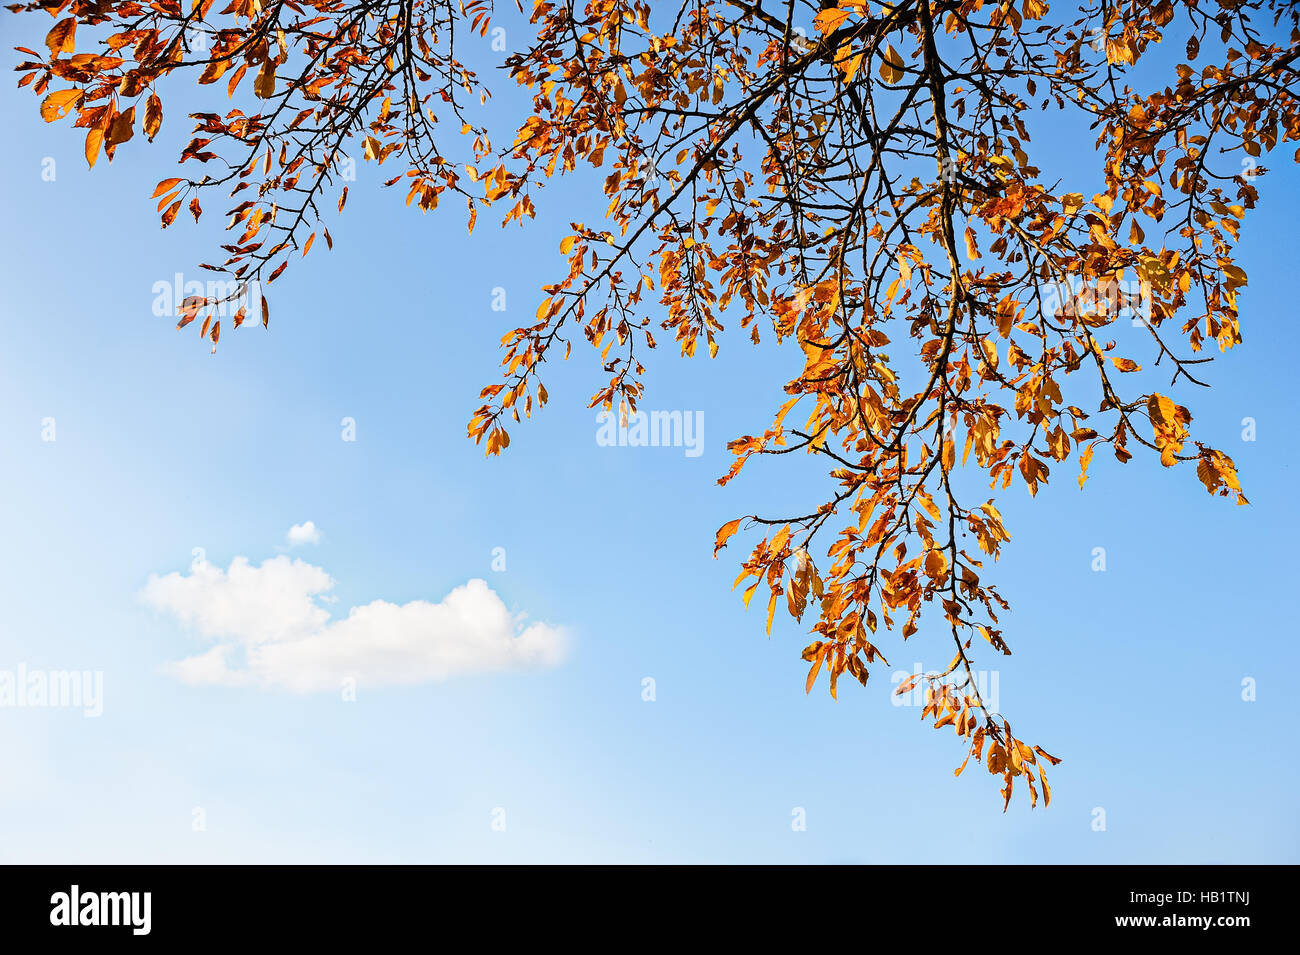 Branch and autumn leaves against a blue sky - Stock Image